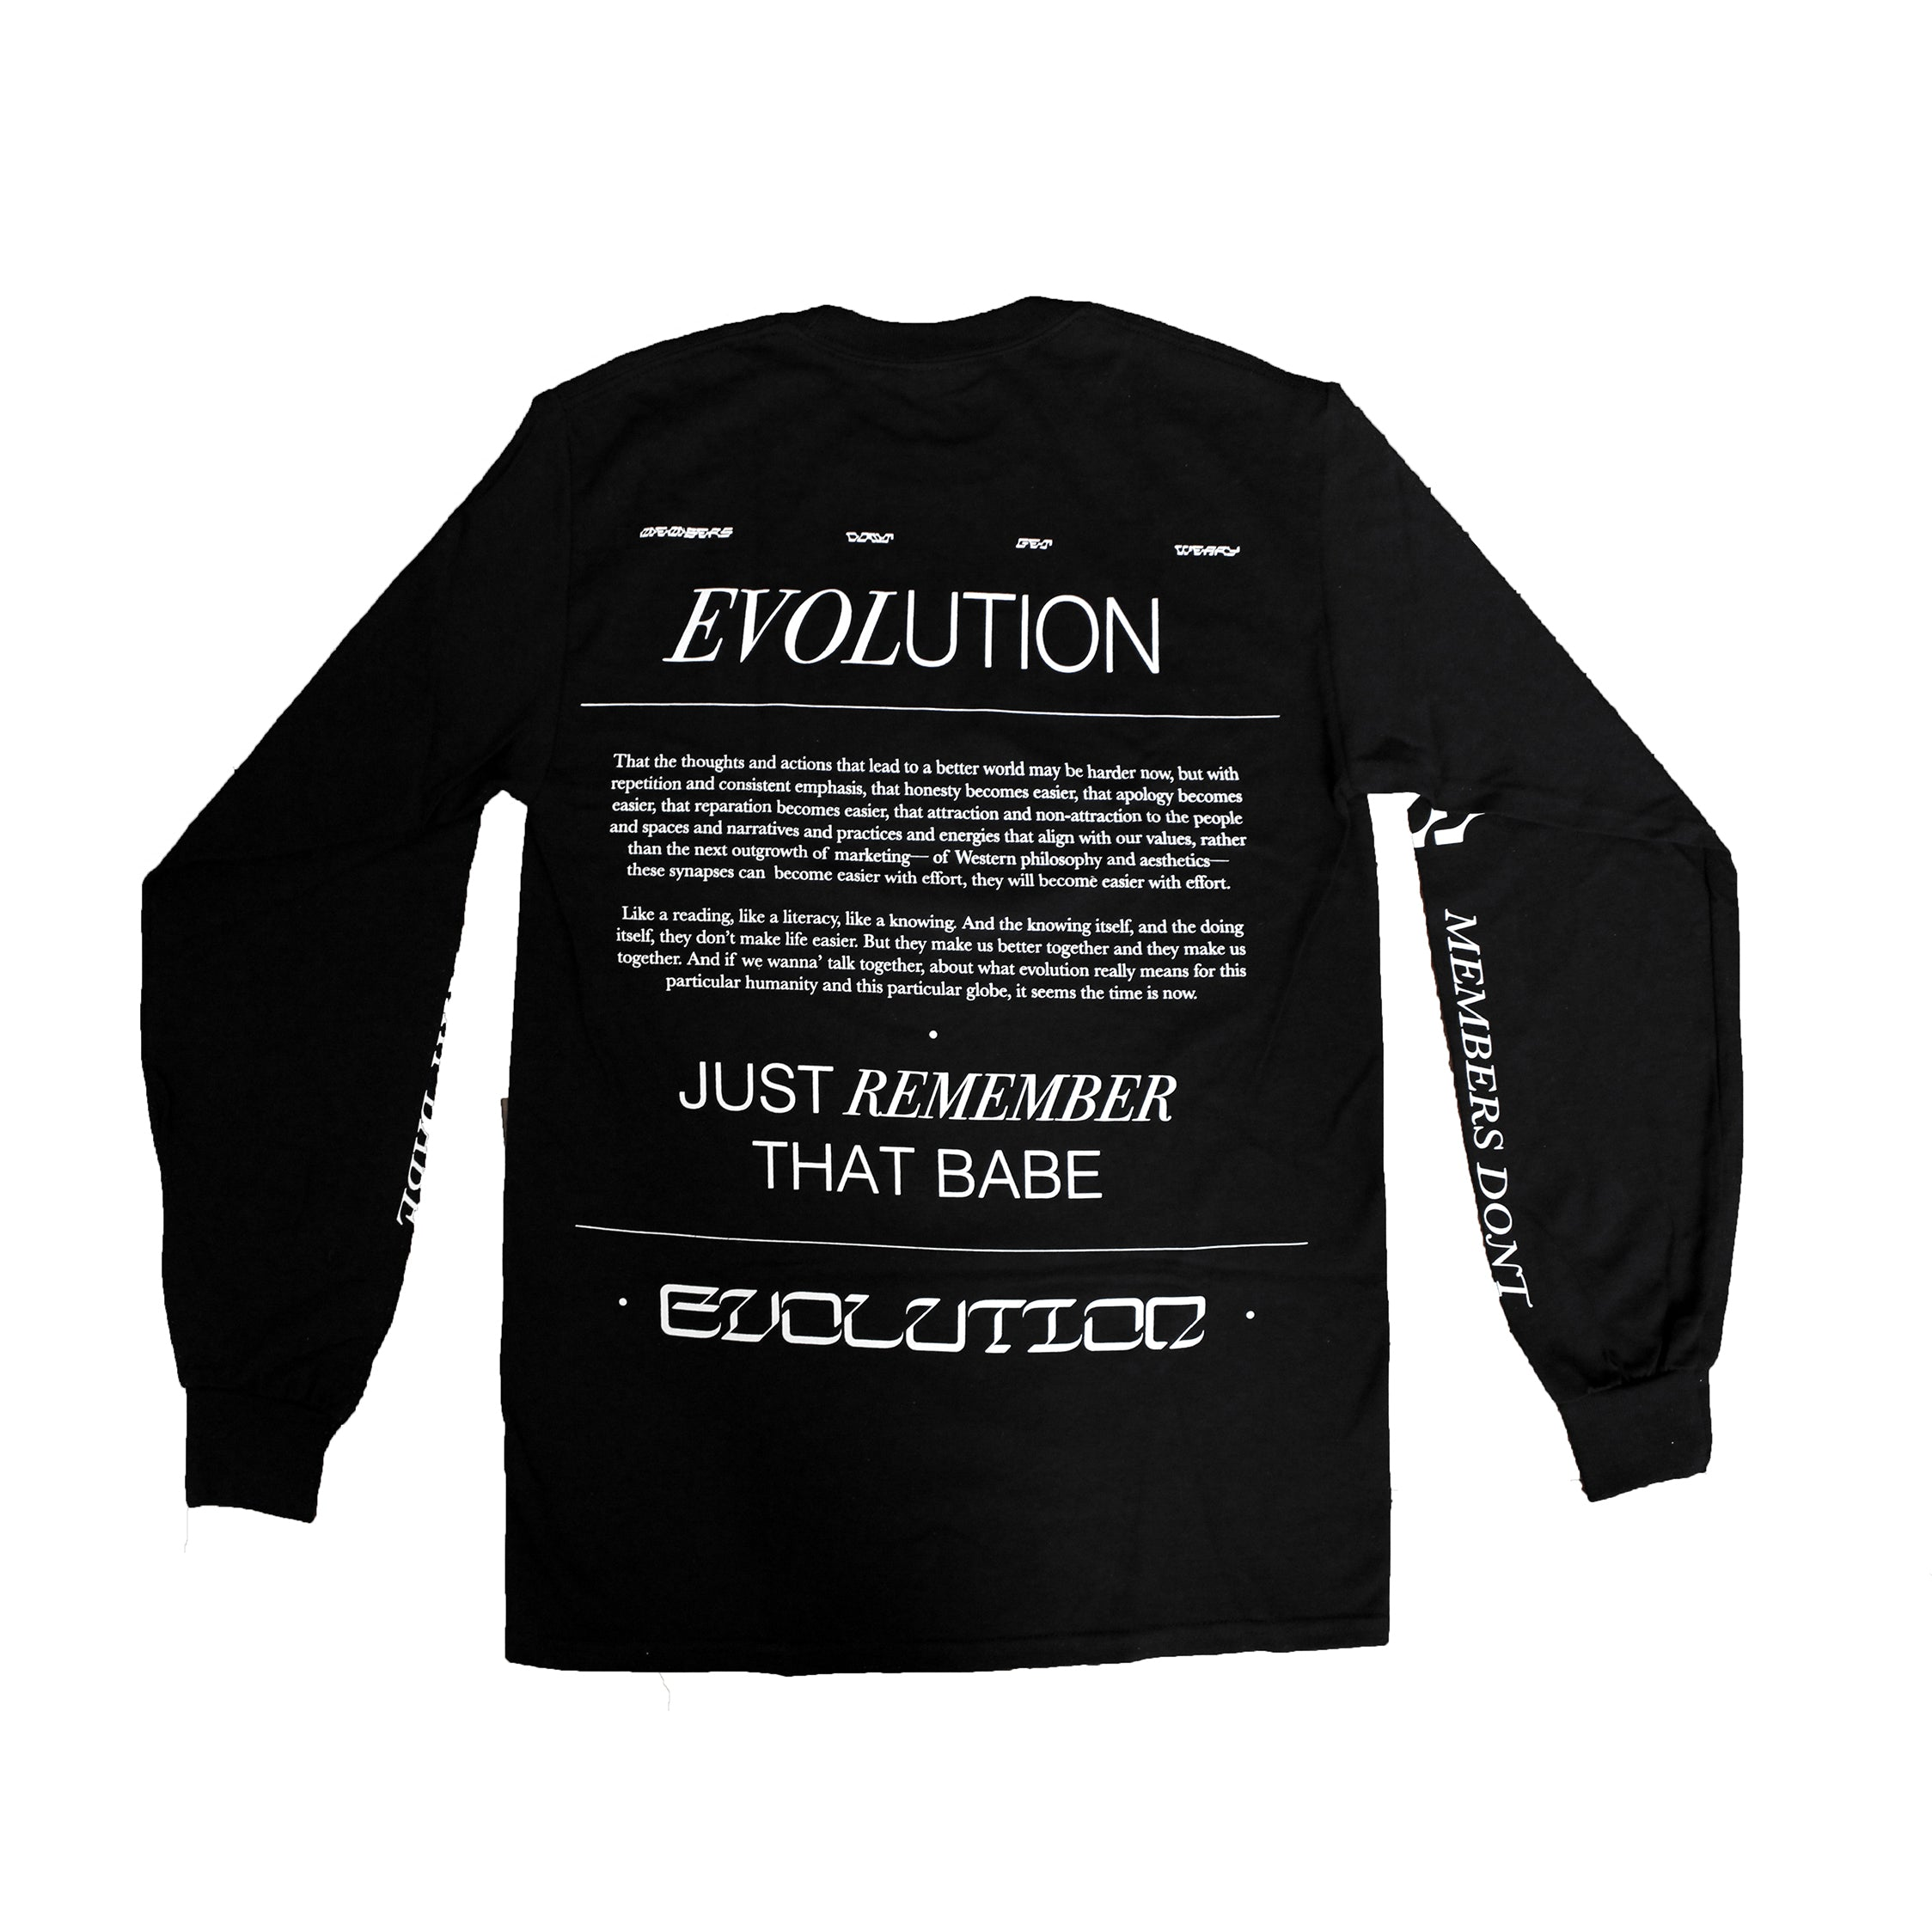 MANDY HARRIS EVOLUTION TEE